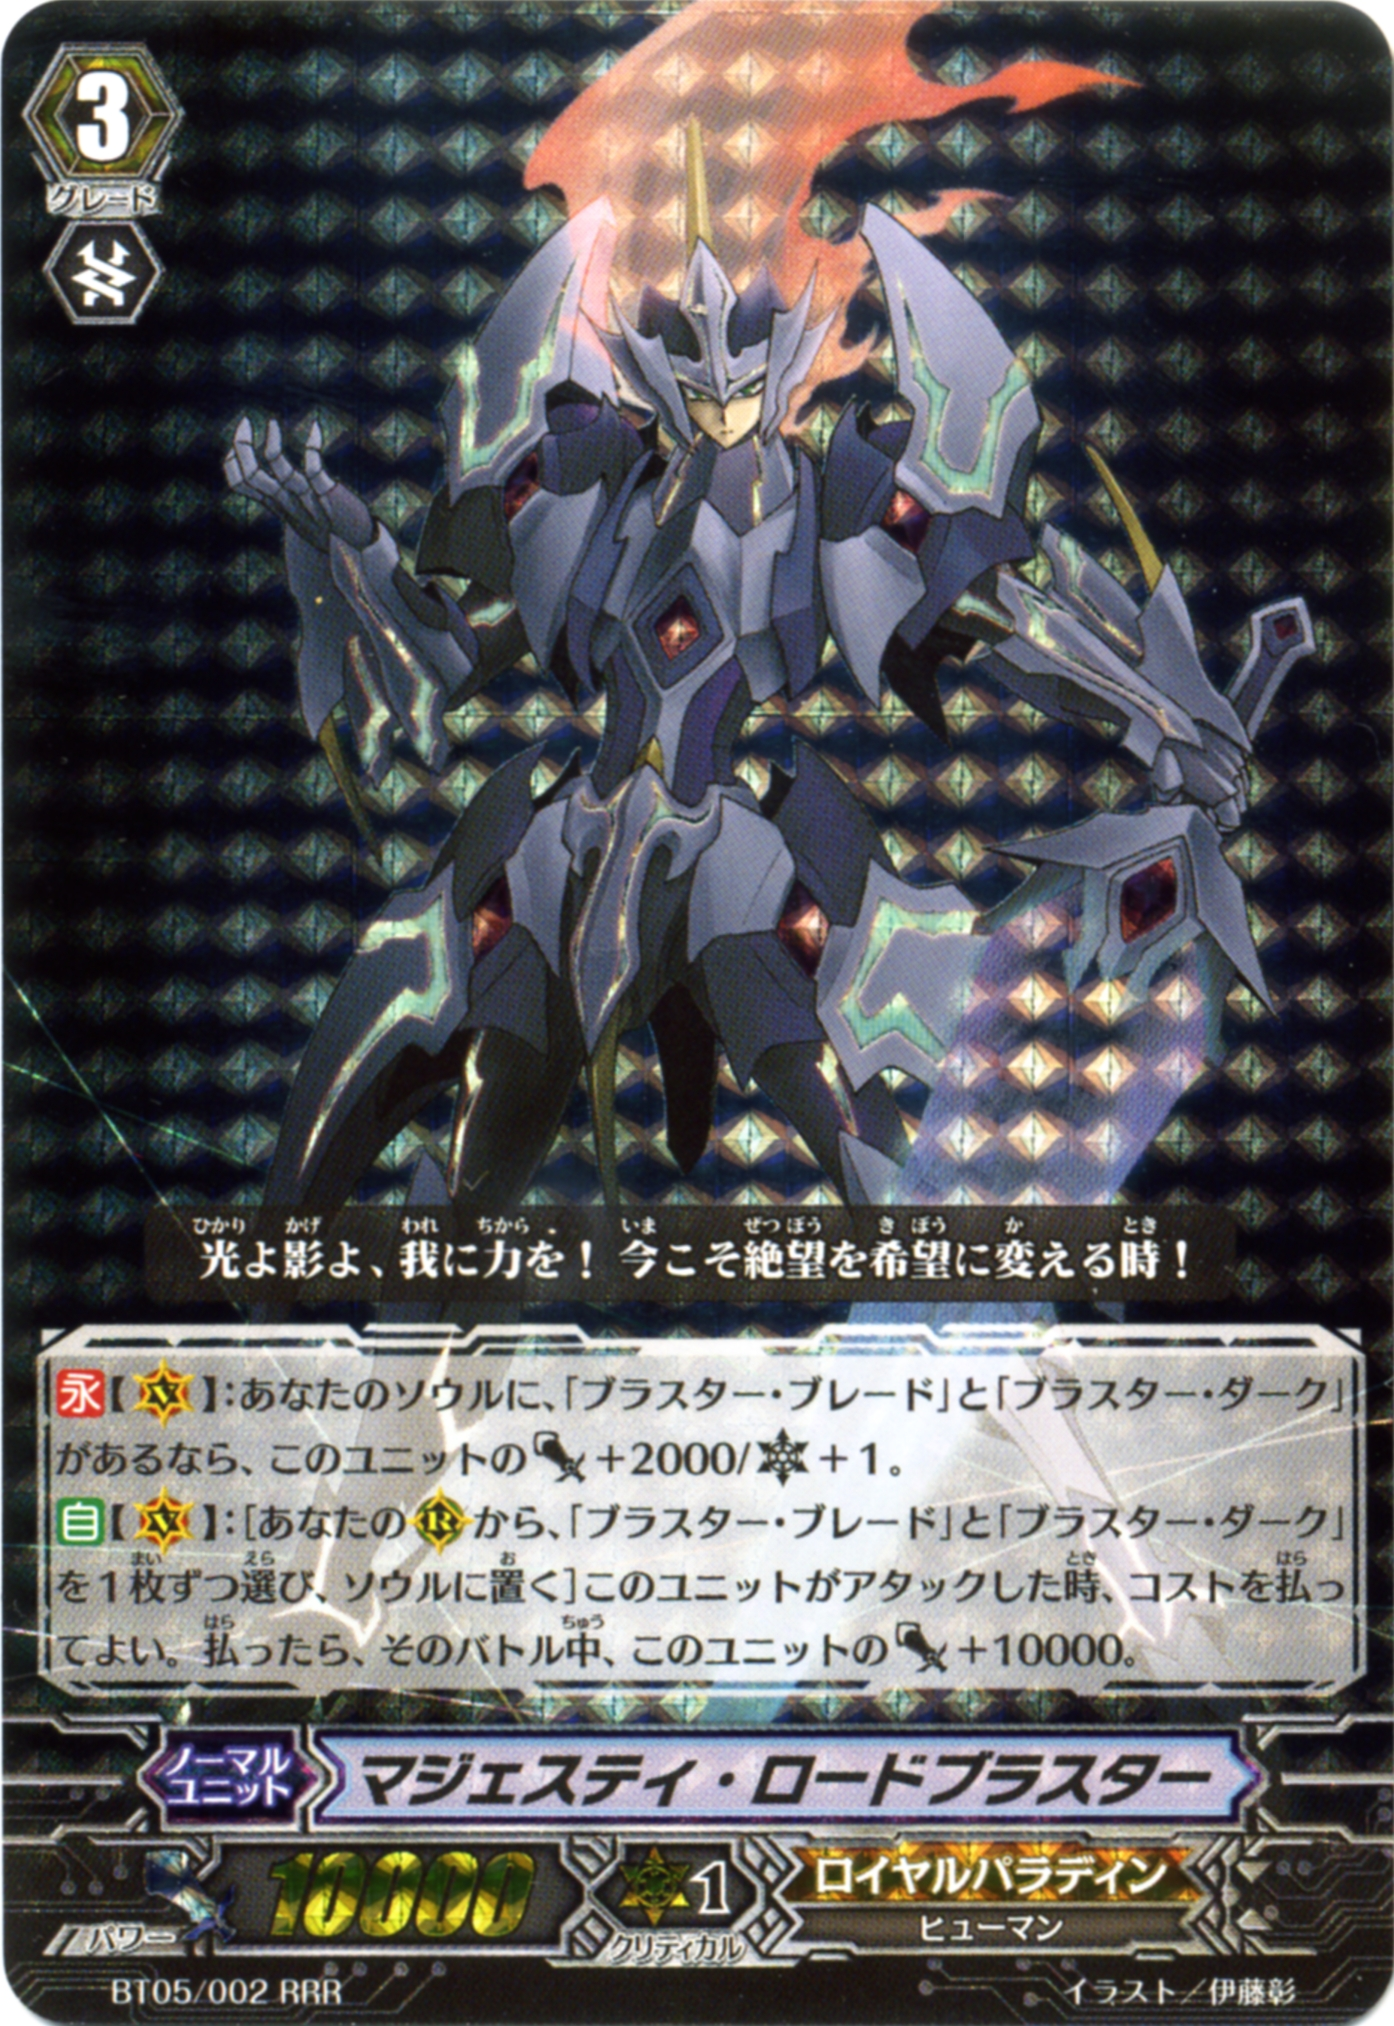 MAJESTY LORD BLASTER - Cardfight!! Vanguard Wiki